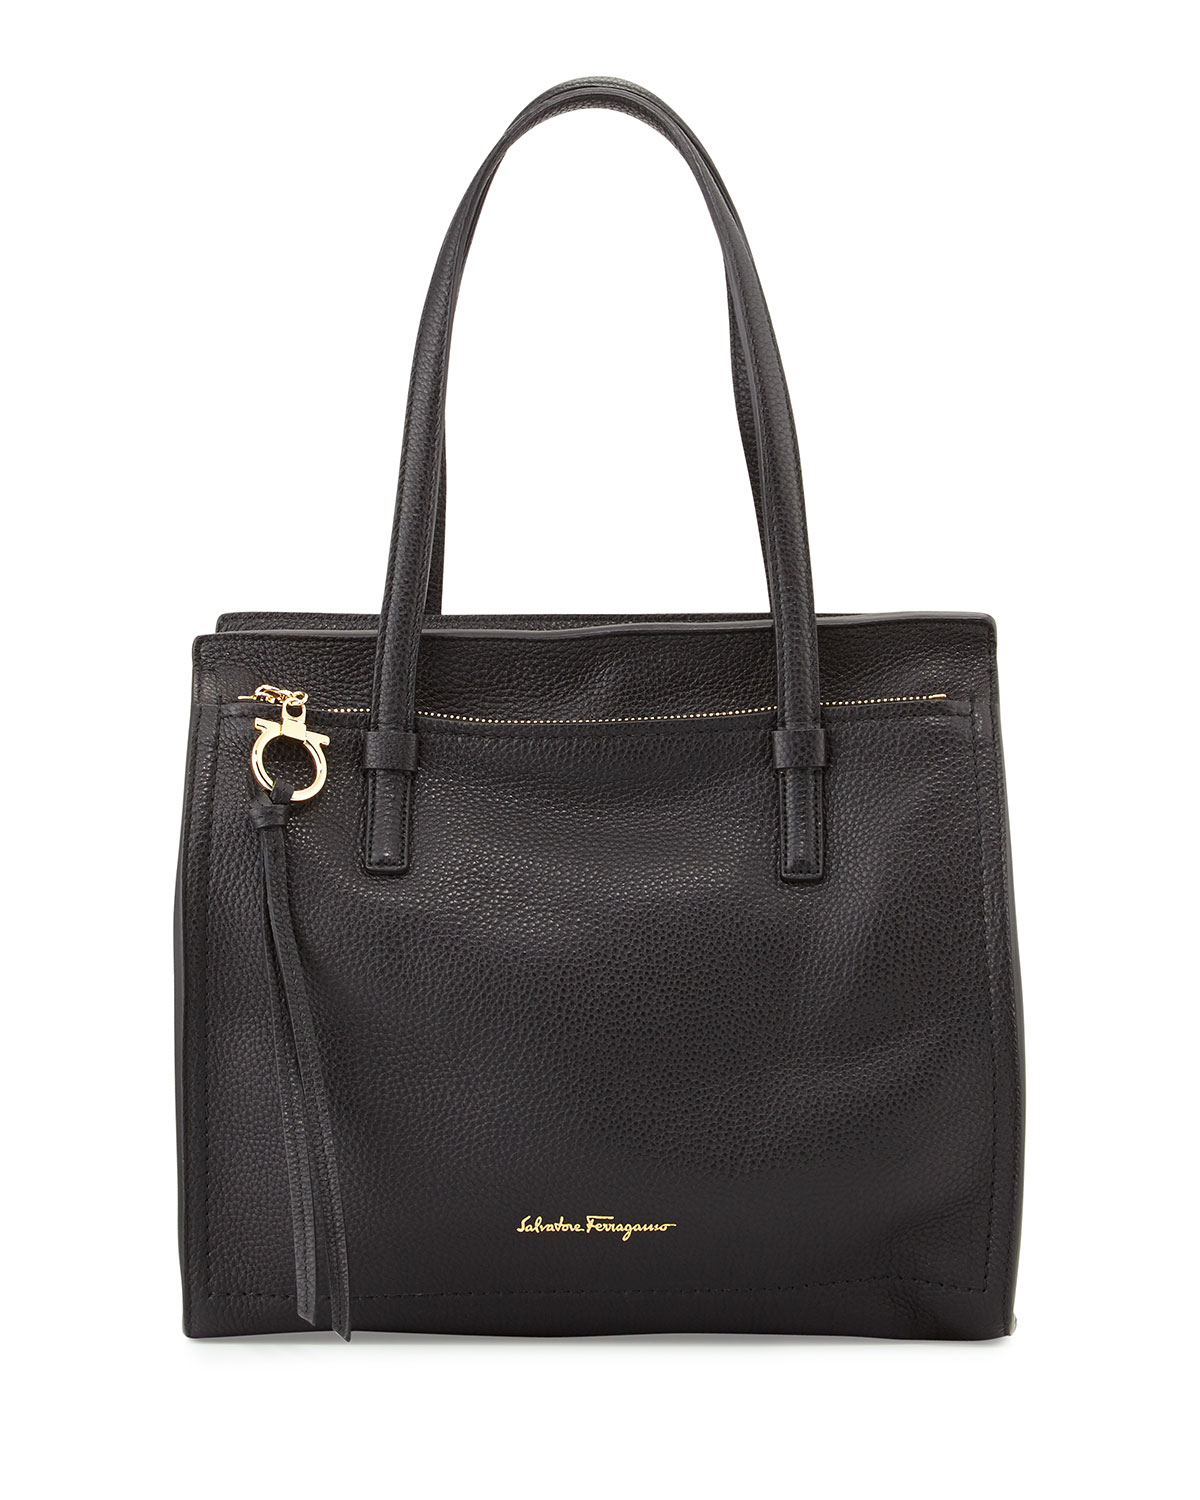 dbfd6c9893 Salvatore Ferragamo Medium Leather Tote Bag